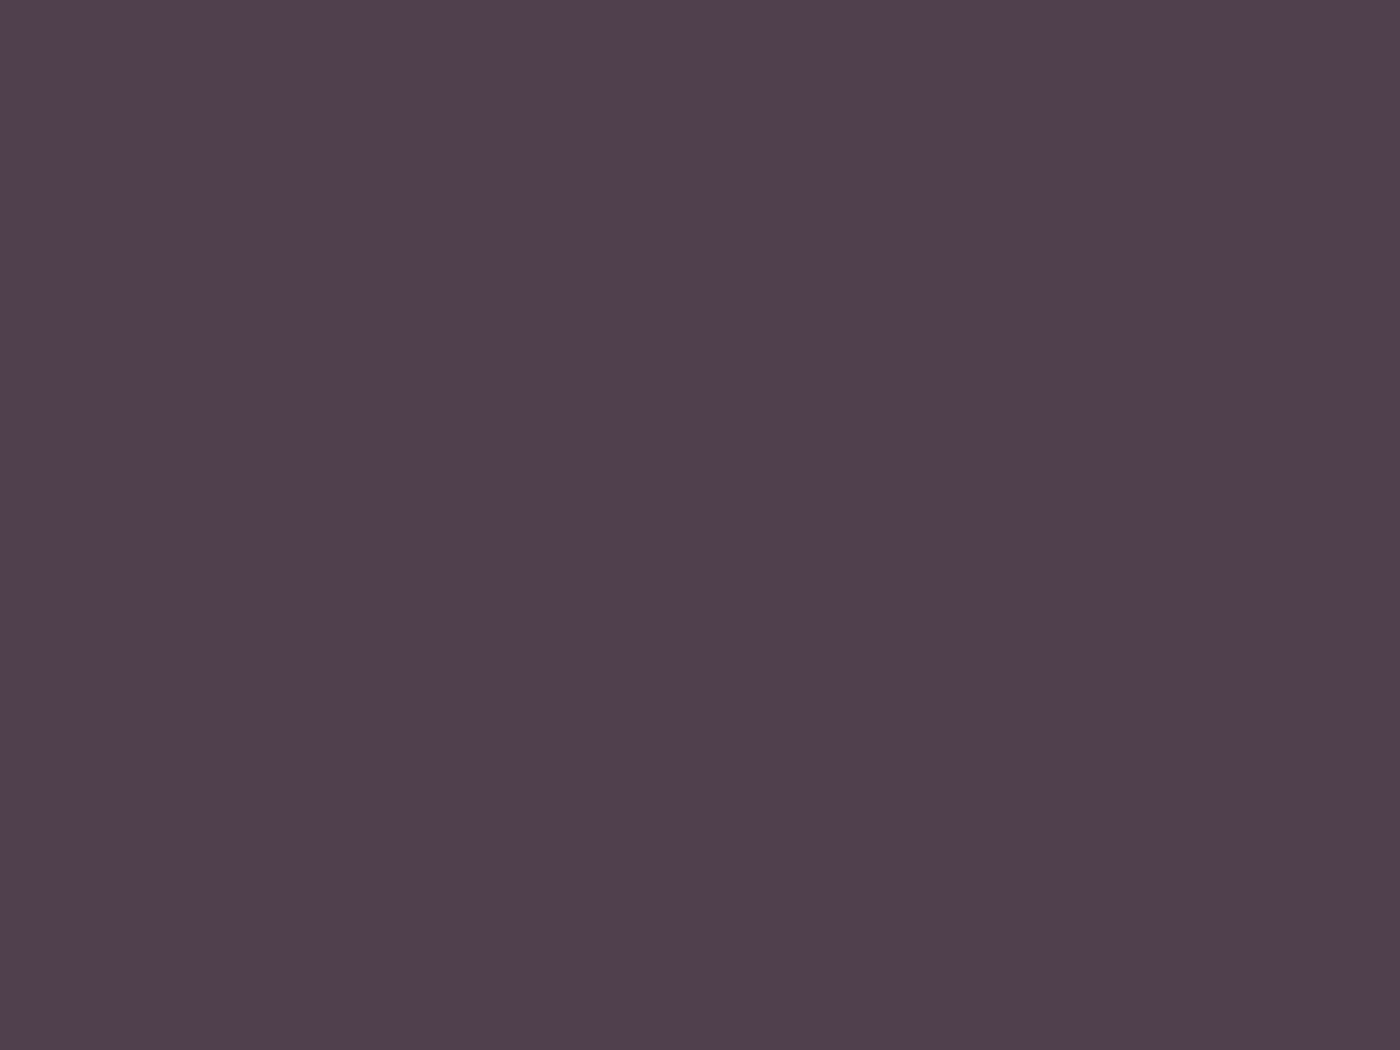 1400x1050 Purple Taupe Solid Color Background